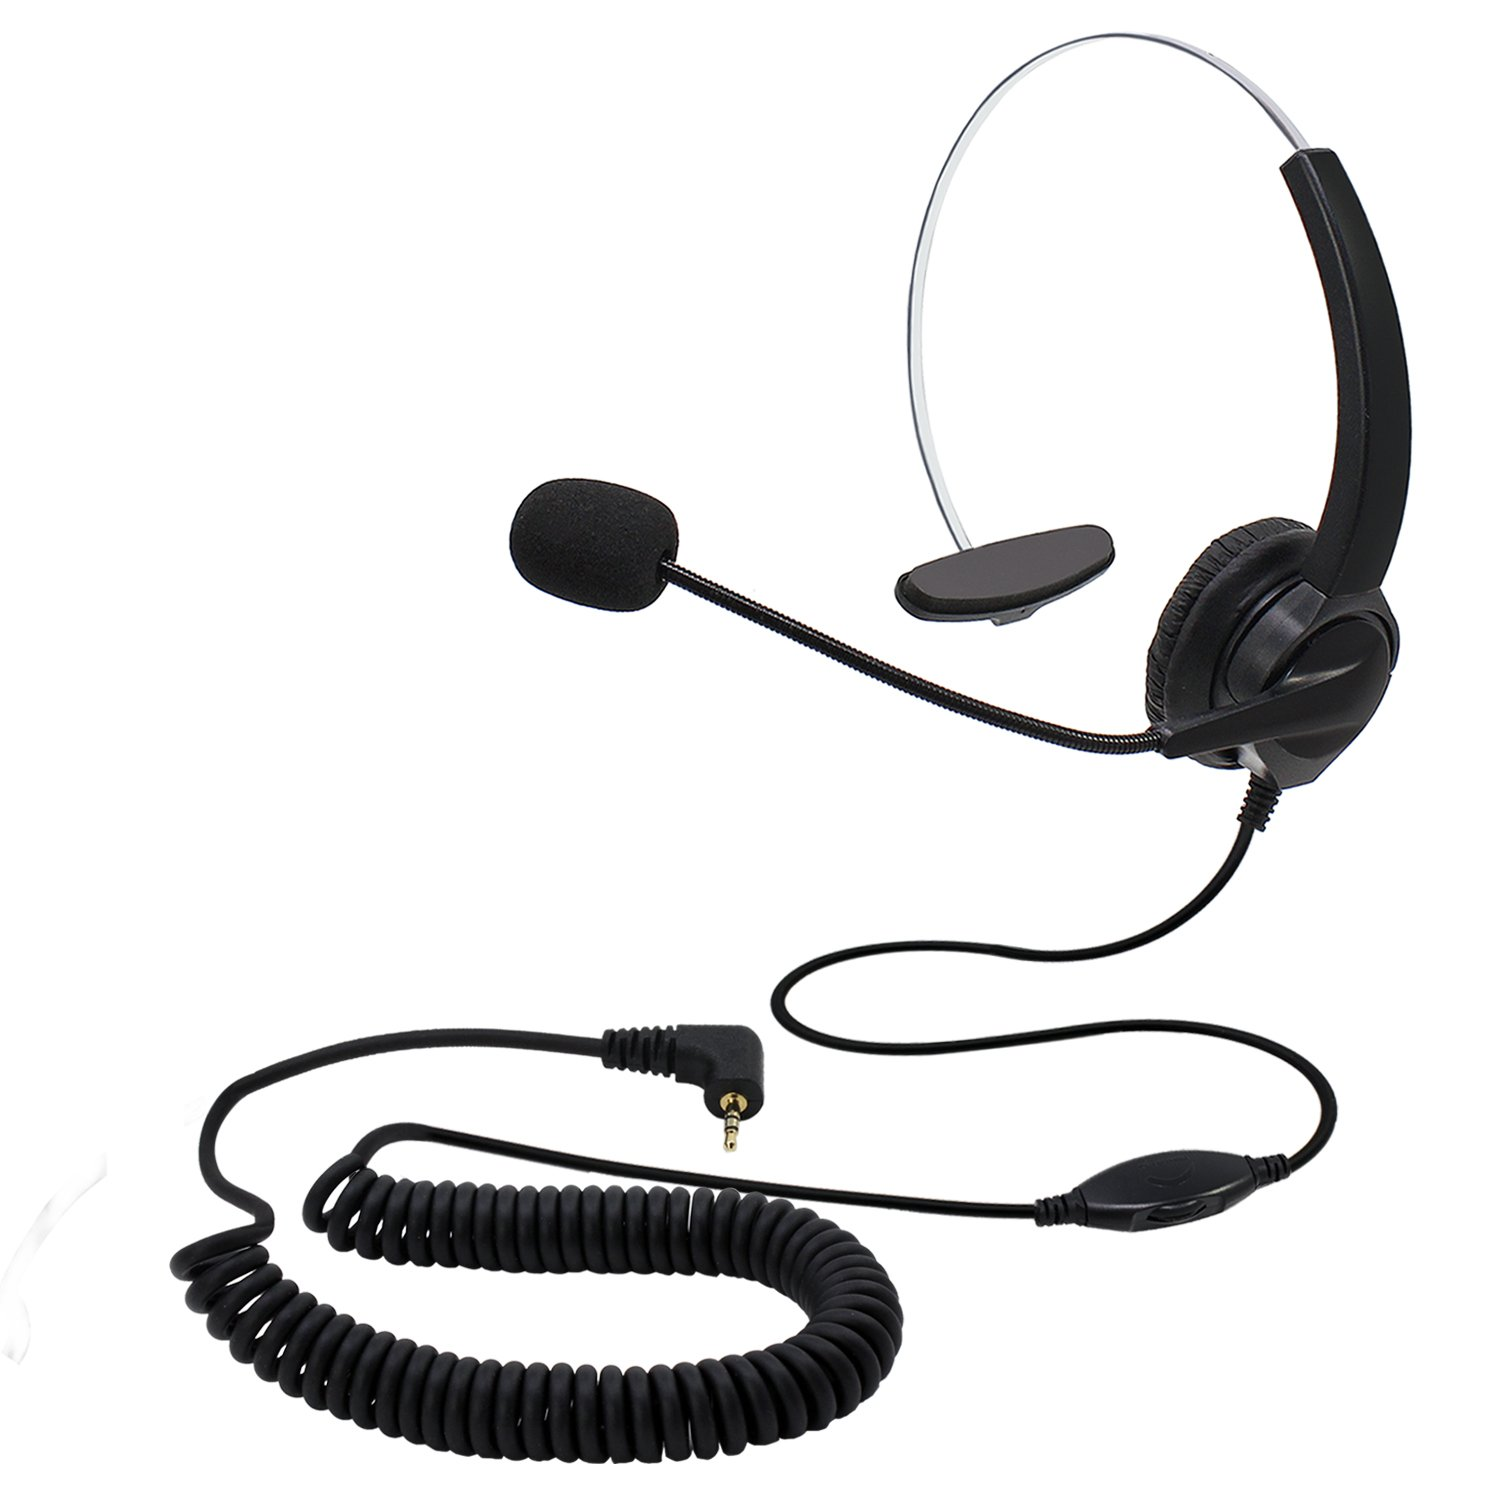 abcGOODefg Handsfree Call Center Headset Single-Ear Corded Noise Cancelling Headphone (2.5mm Monaural Headset)